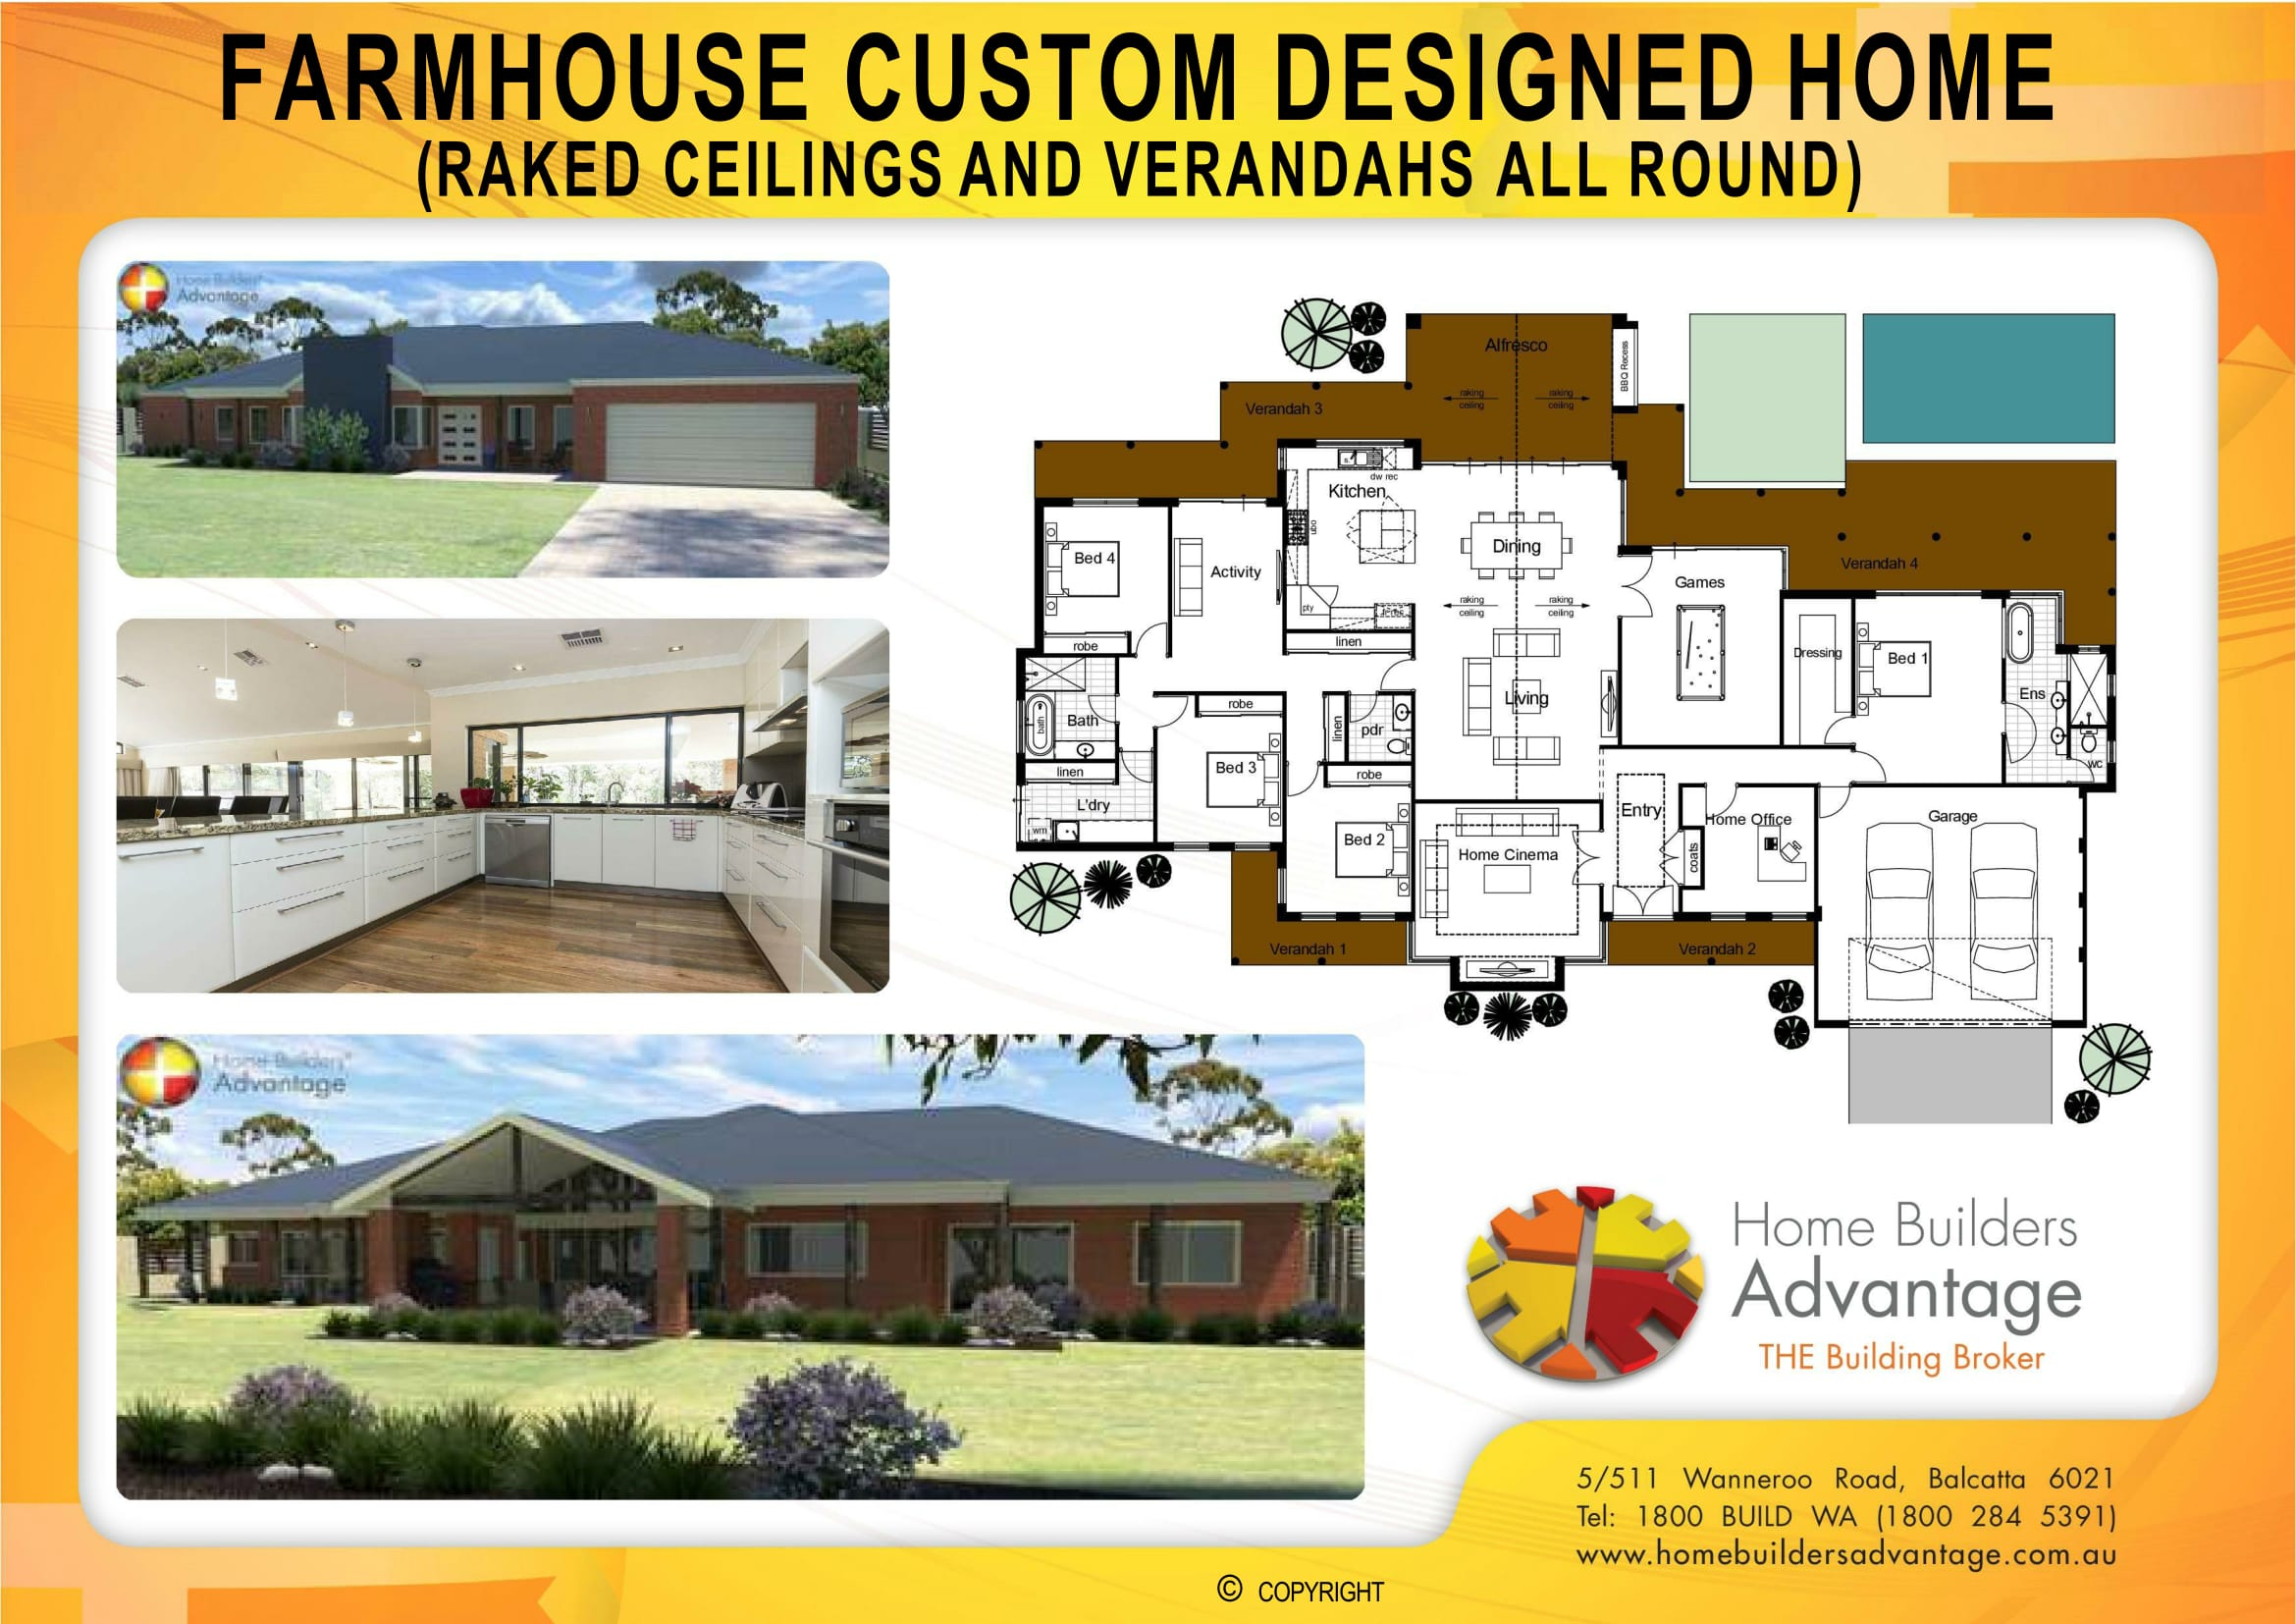 Farmhouse Custom Designed Home (Raked Ceilings and Verandahs All Round)